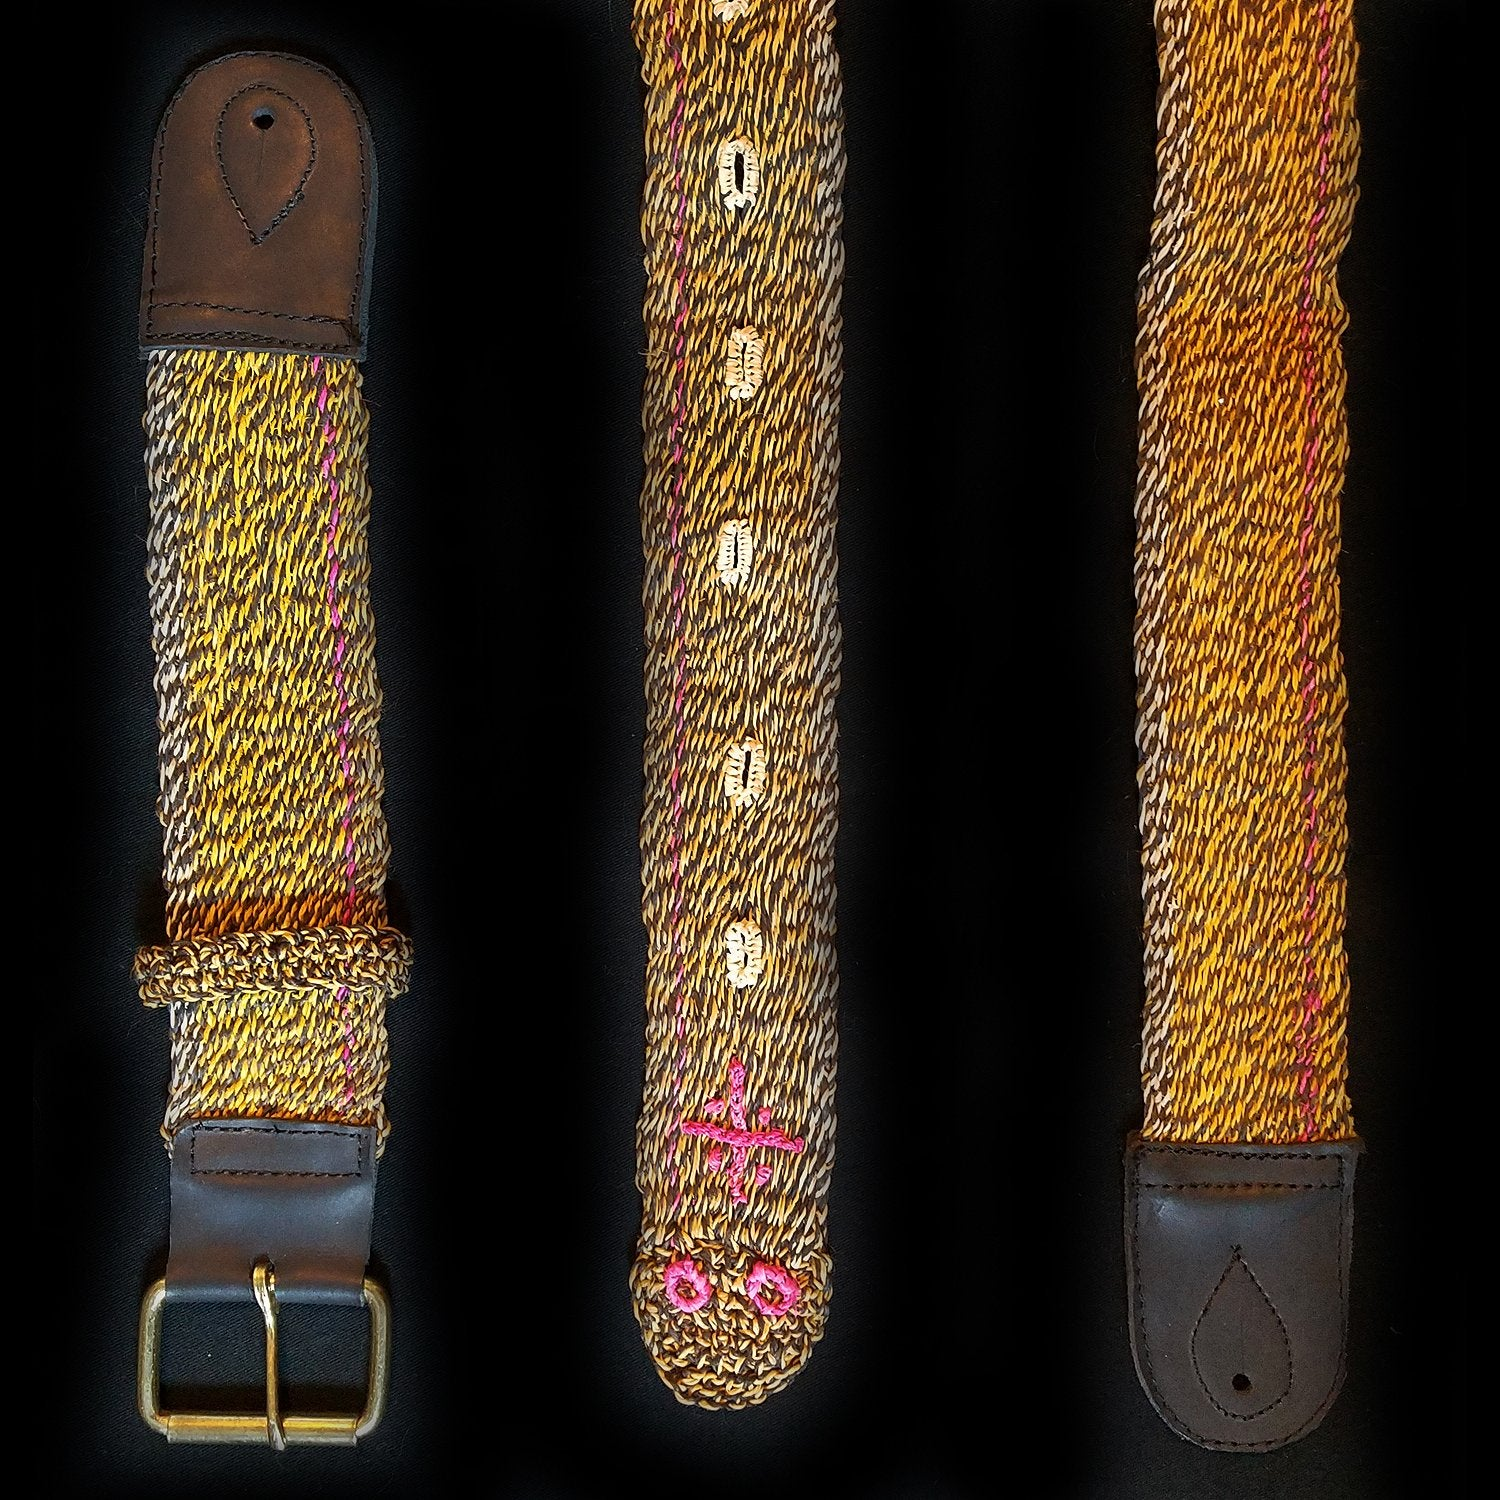 GS05A : Fair-trade hand-made Amazon guitar strap - tropical rattlesnake model